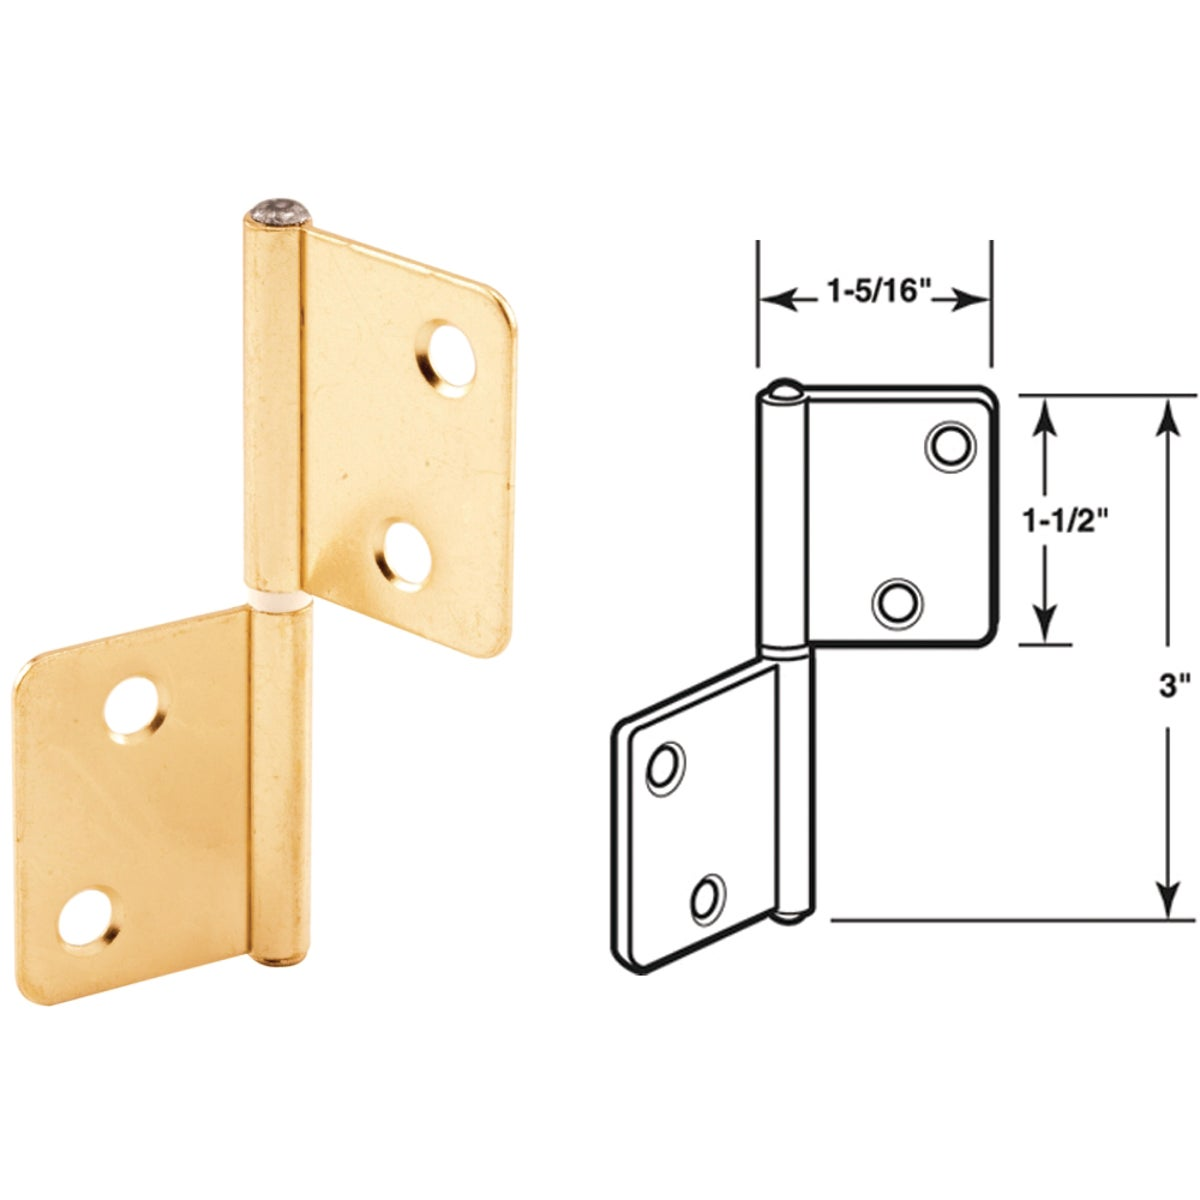 BI-FOLD CLOSET HINGE - 162171 by Prime Line Products